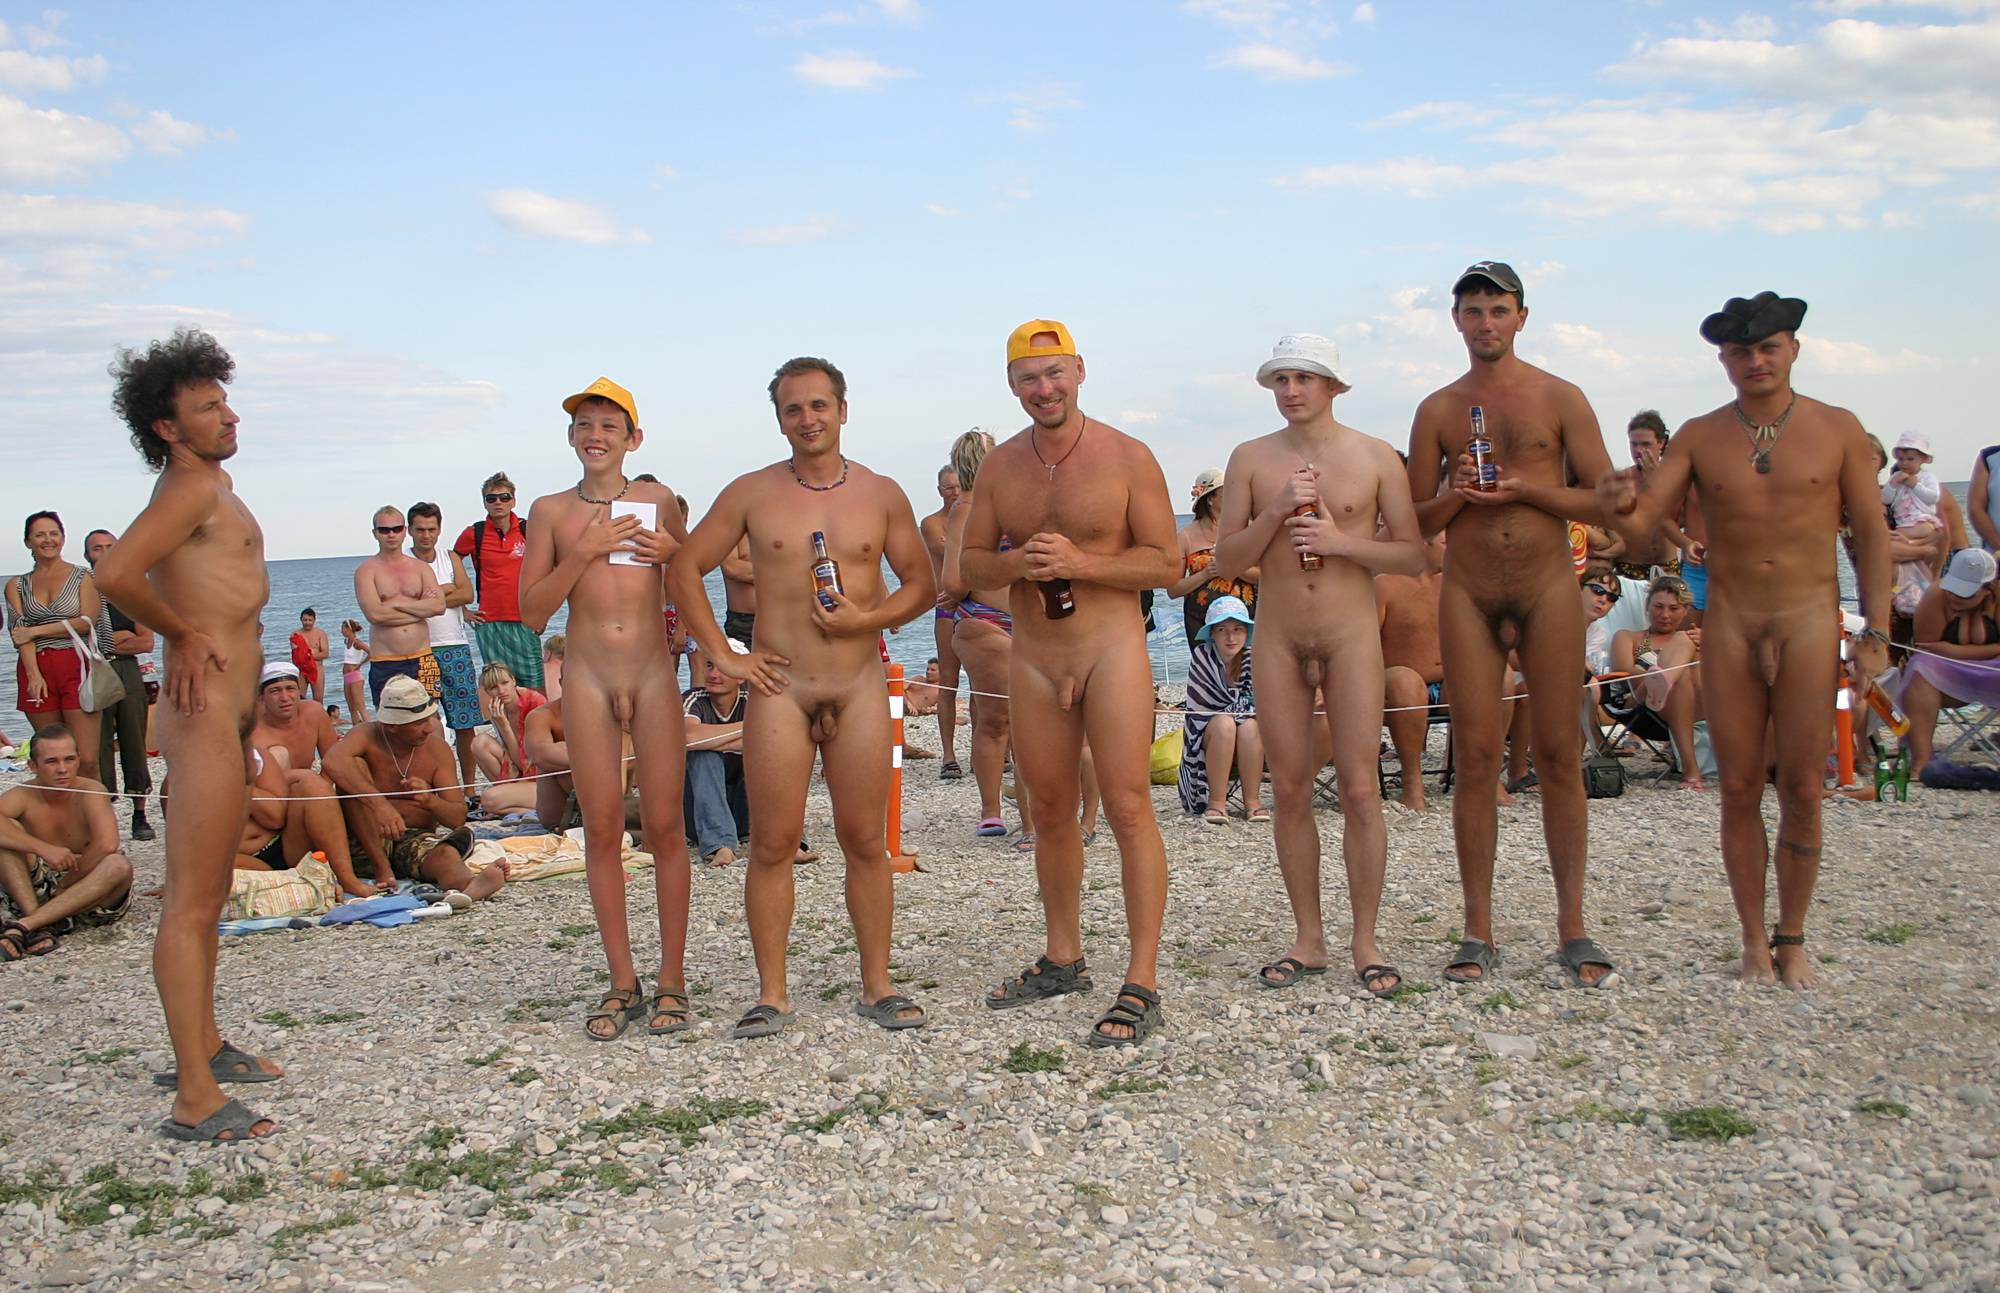 Pure Nudism Profile and Group Dancing - 1